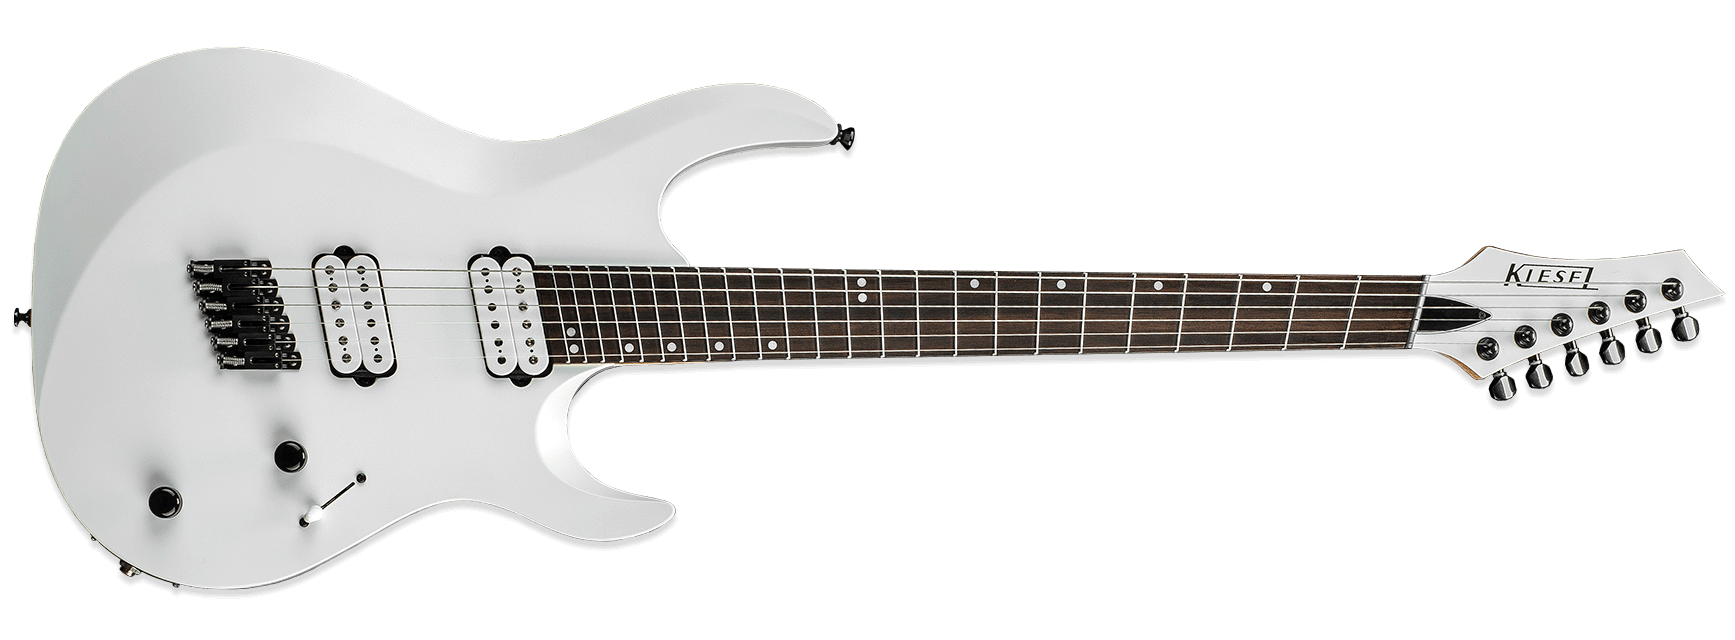 Kiesel Carvin Aries AM6 Multiscale White Satin